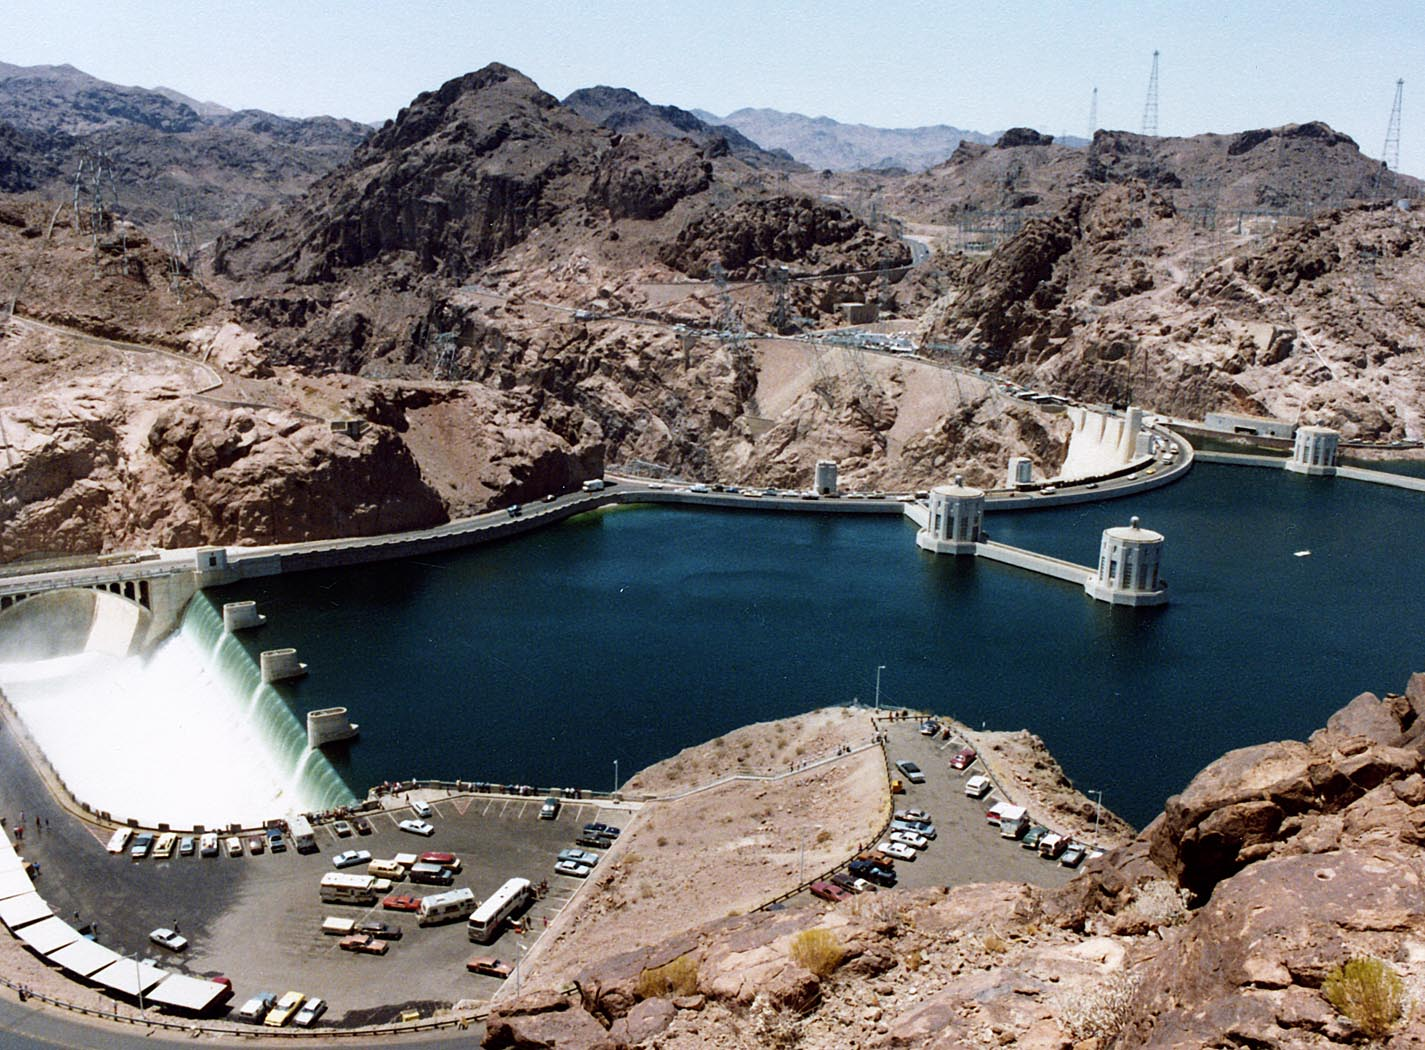 Hoover_Dam_and_Arizona_Spillway,_1983